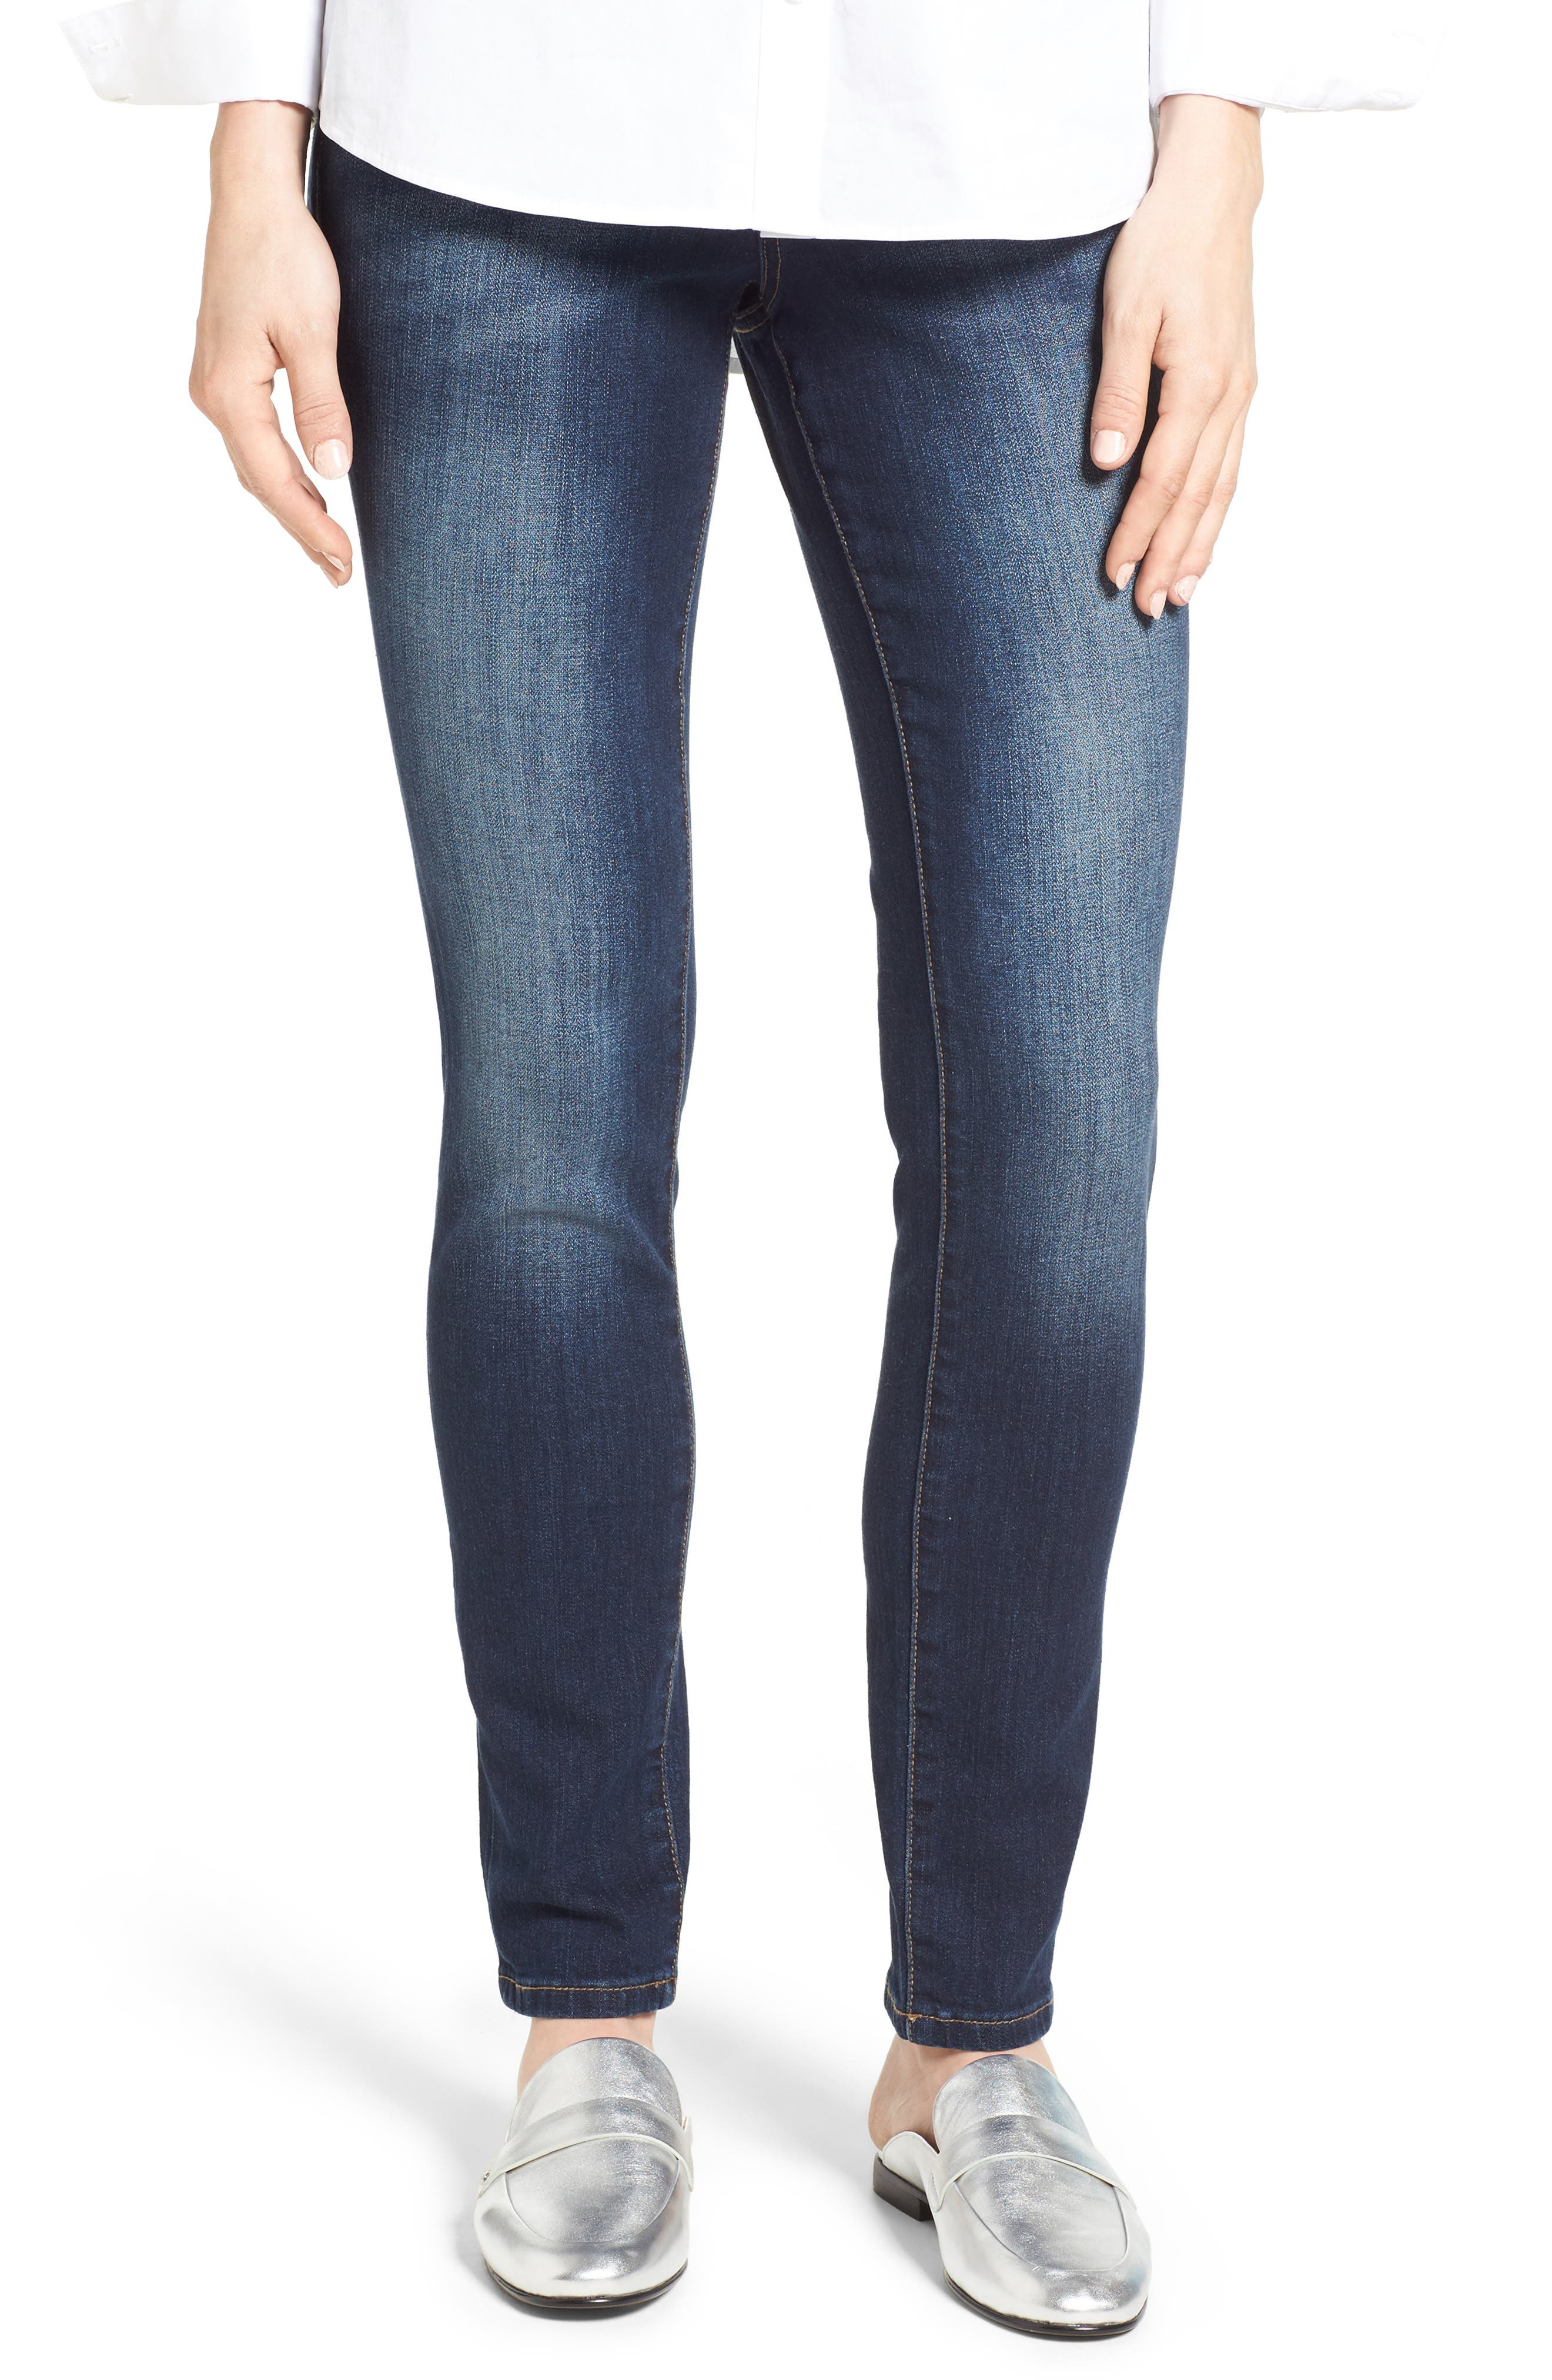 JAG JEANS Jag Nora Stretch Cotton Skinny Jeans